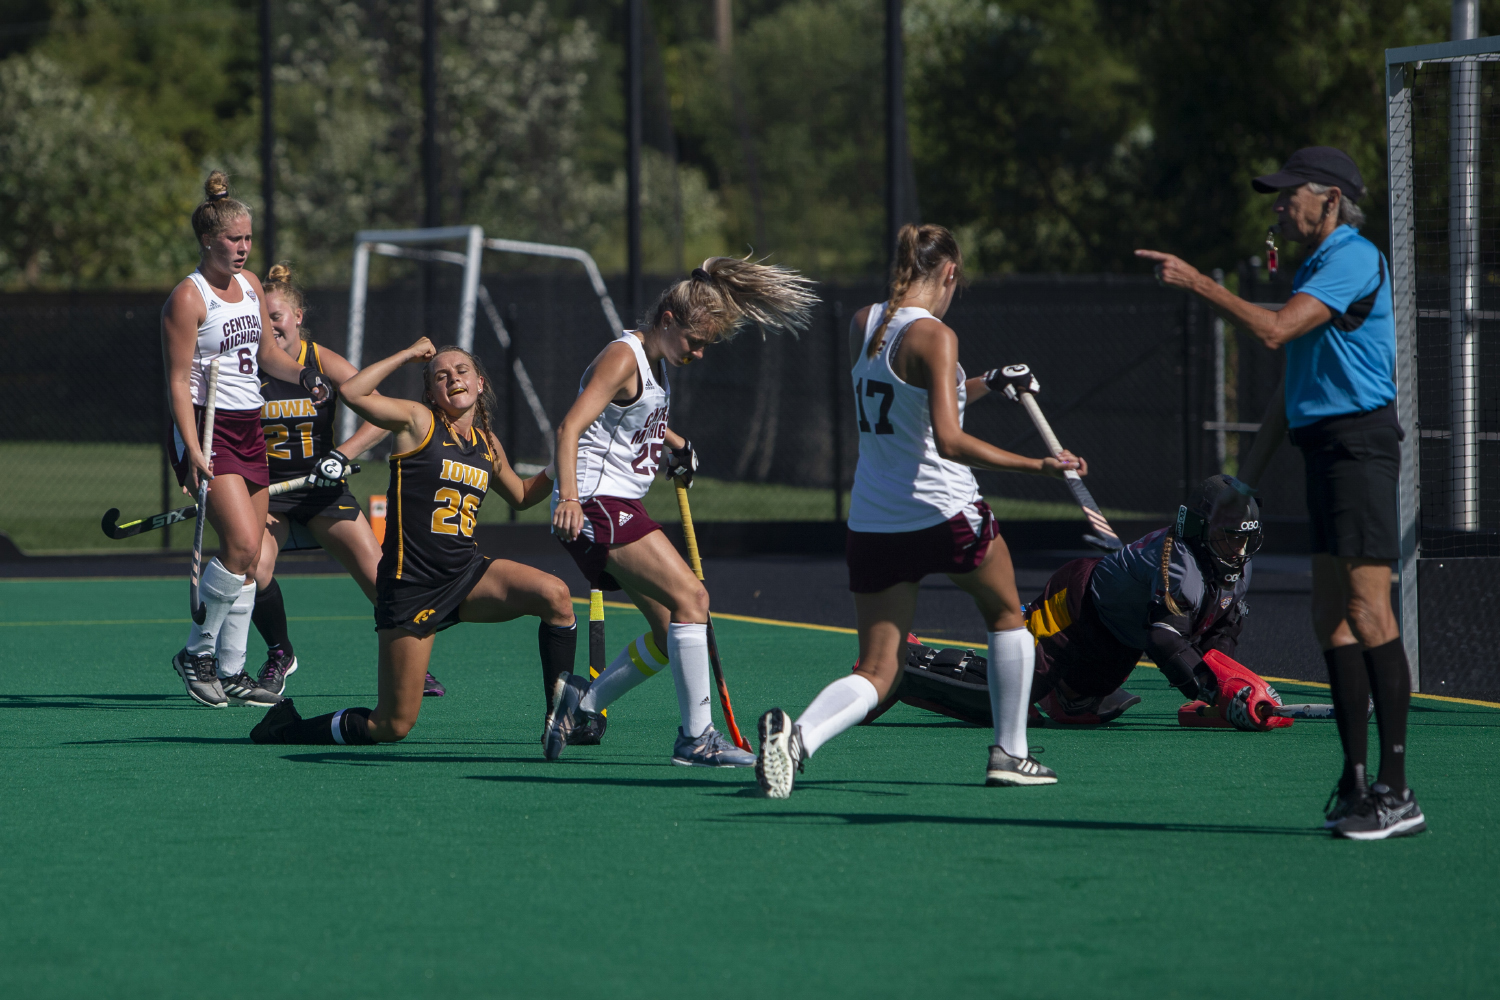 Iowa forward Maddy Murphy celebrates a goal during a field hockey game between Iowa and Central Michigan at Grant Field on Friday, September 6, 2019. The Hawkeyes defeated the Chippewas, 11-0.